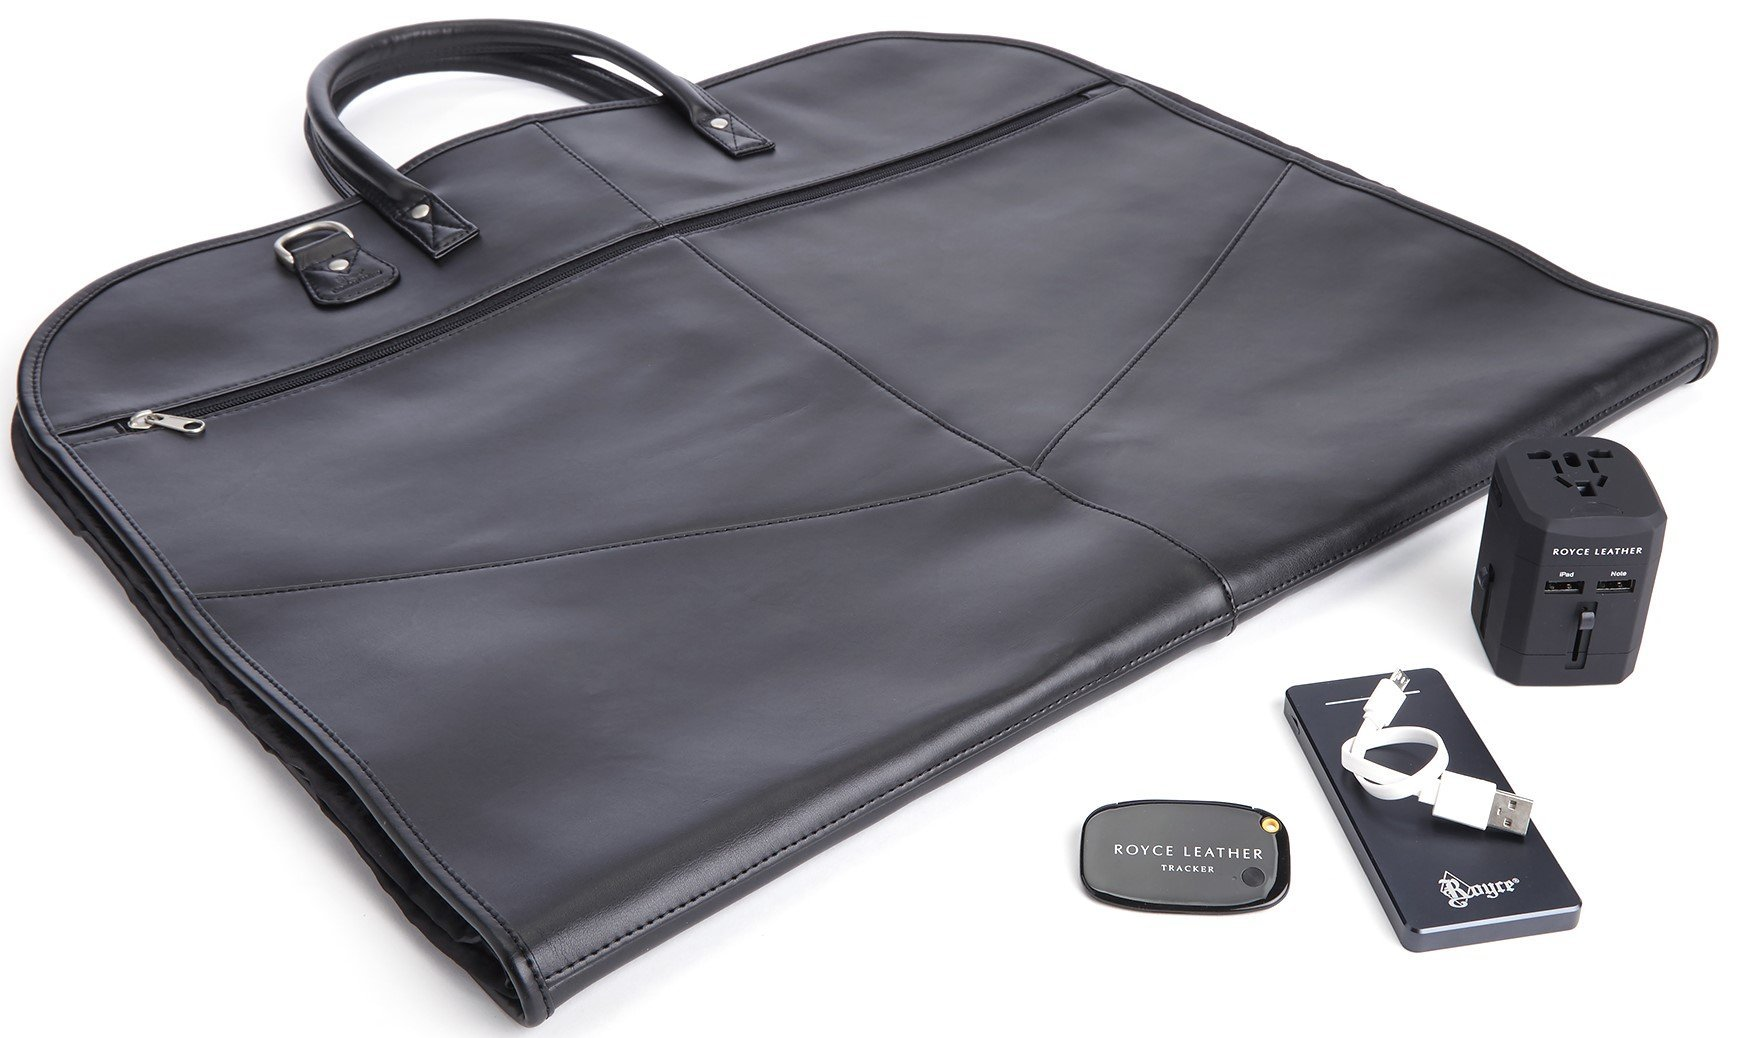 ROYCE Luxury Travel Set: Garment Bag with Bluetooth-based Tracking Device for Locating Luggage, Portable Power Bank and International Adapter - Tan by Royce Leather (Image #2)